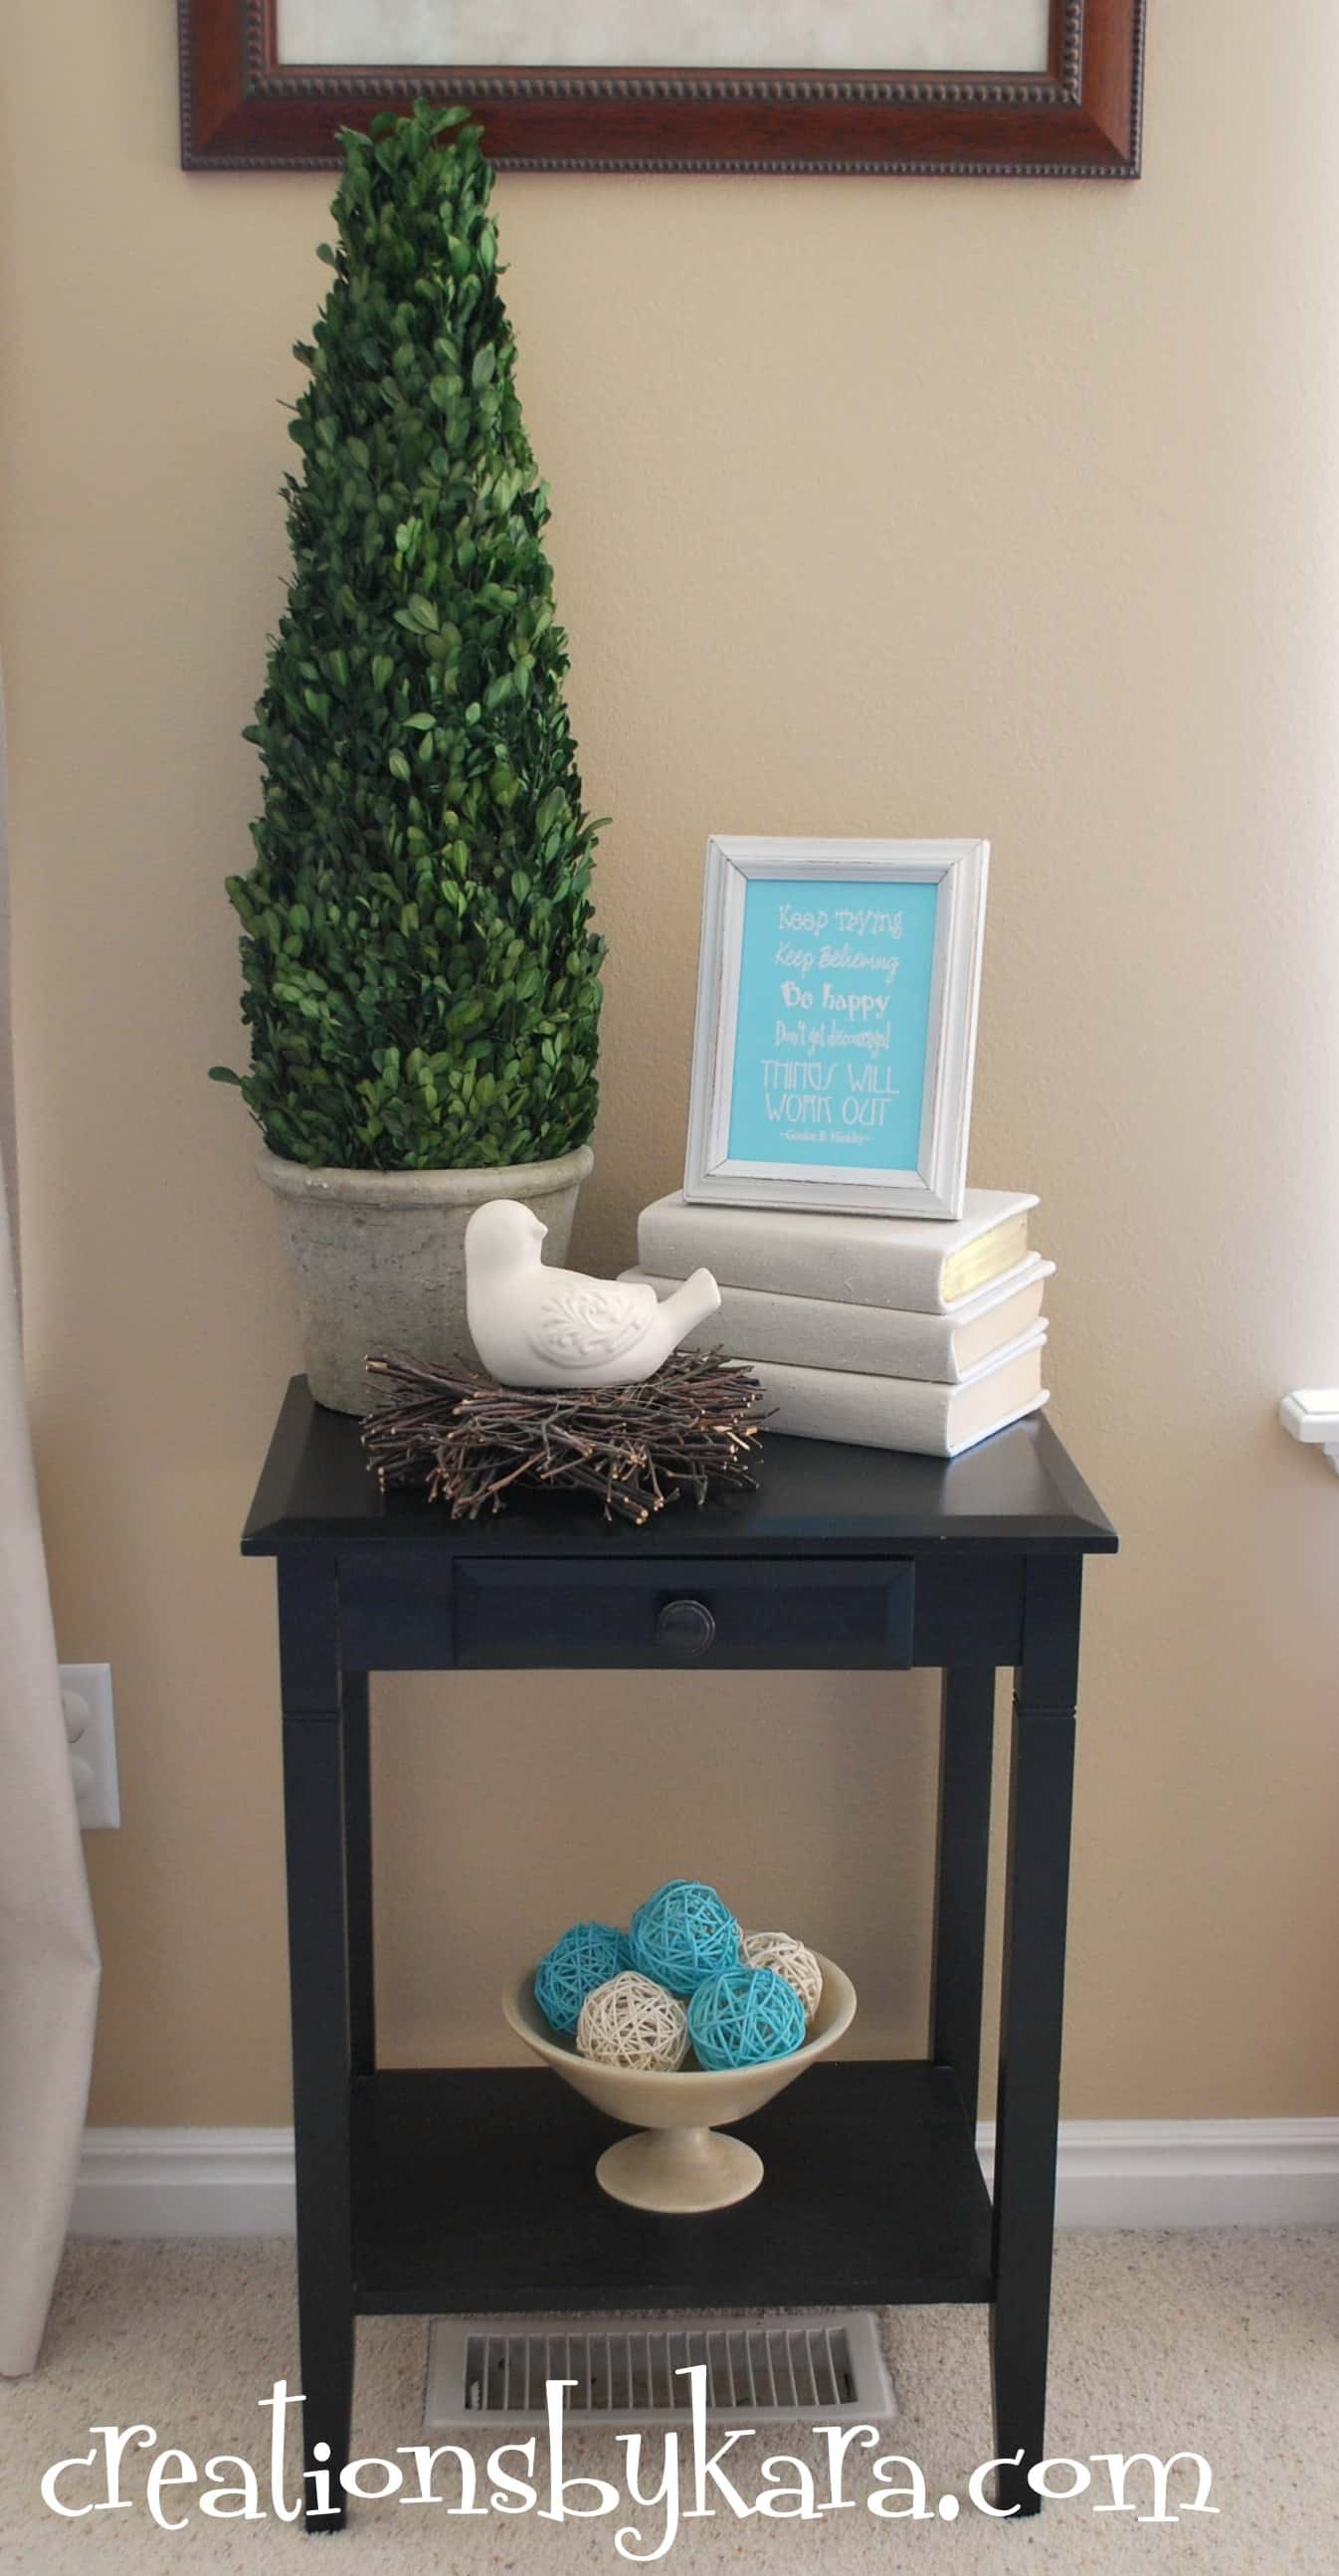 Diy decorating living room table creations by kara for Living room table decor